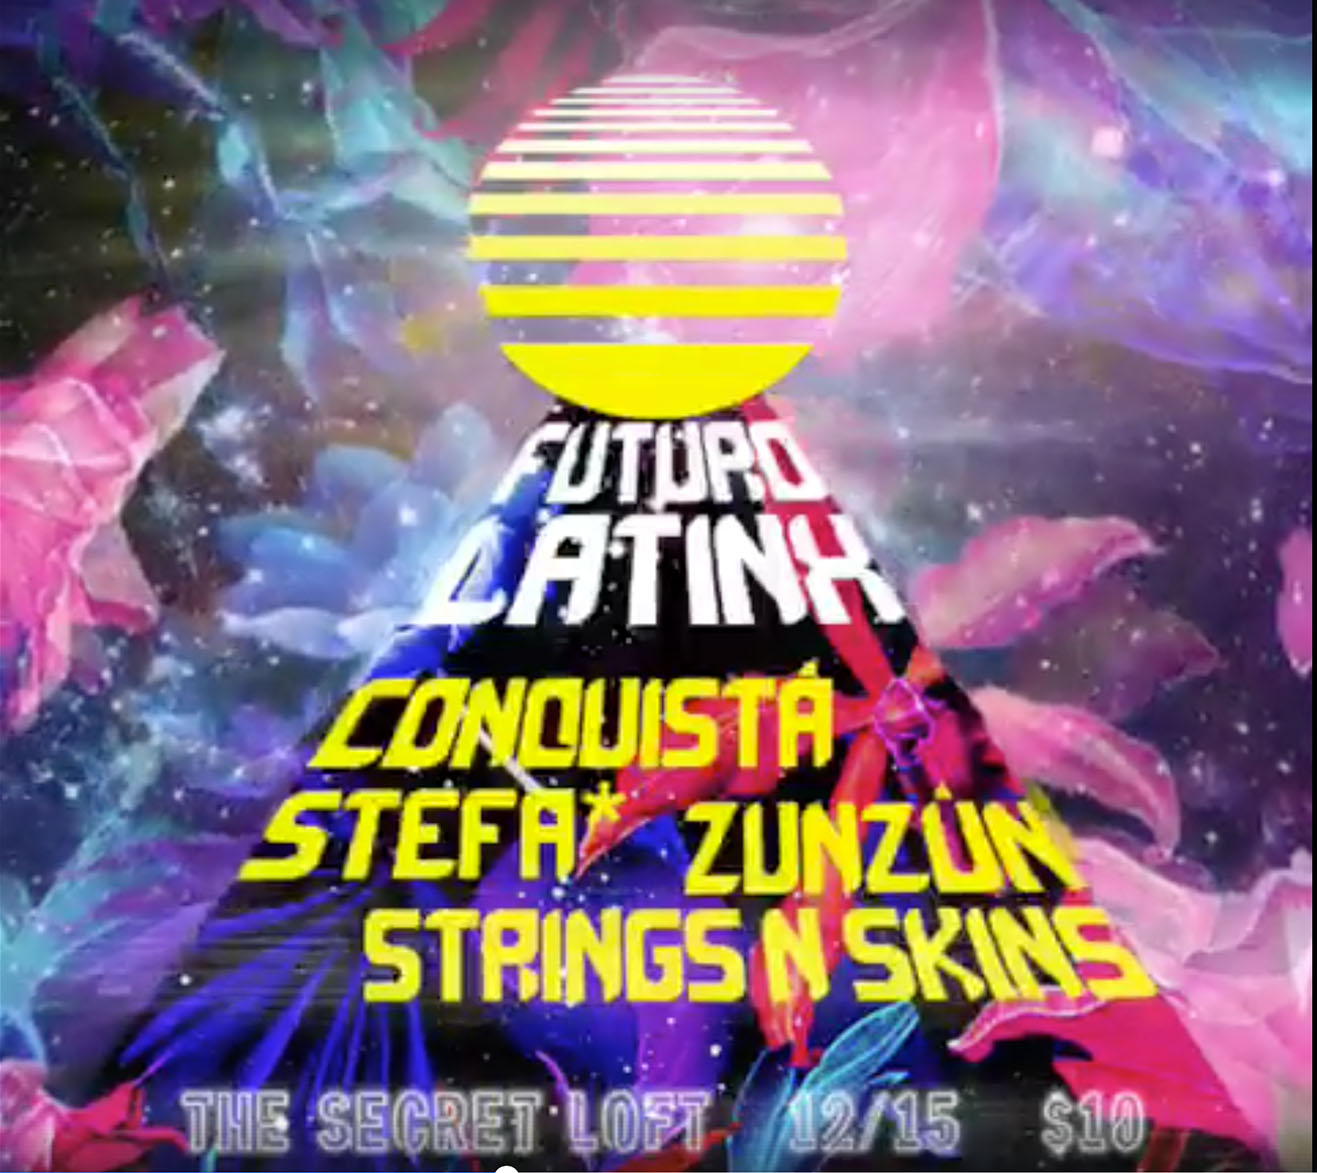 Futuro Latinx - Join futuristic Latin/Afro/Caribbean artists for a night of grooves, dancing, and good times at Secret Loft.